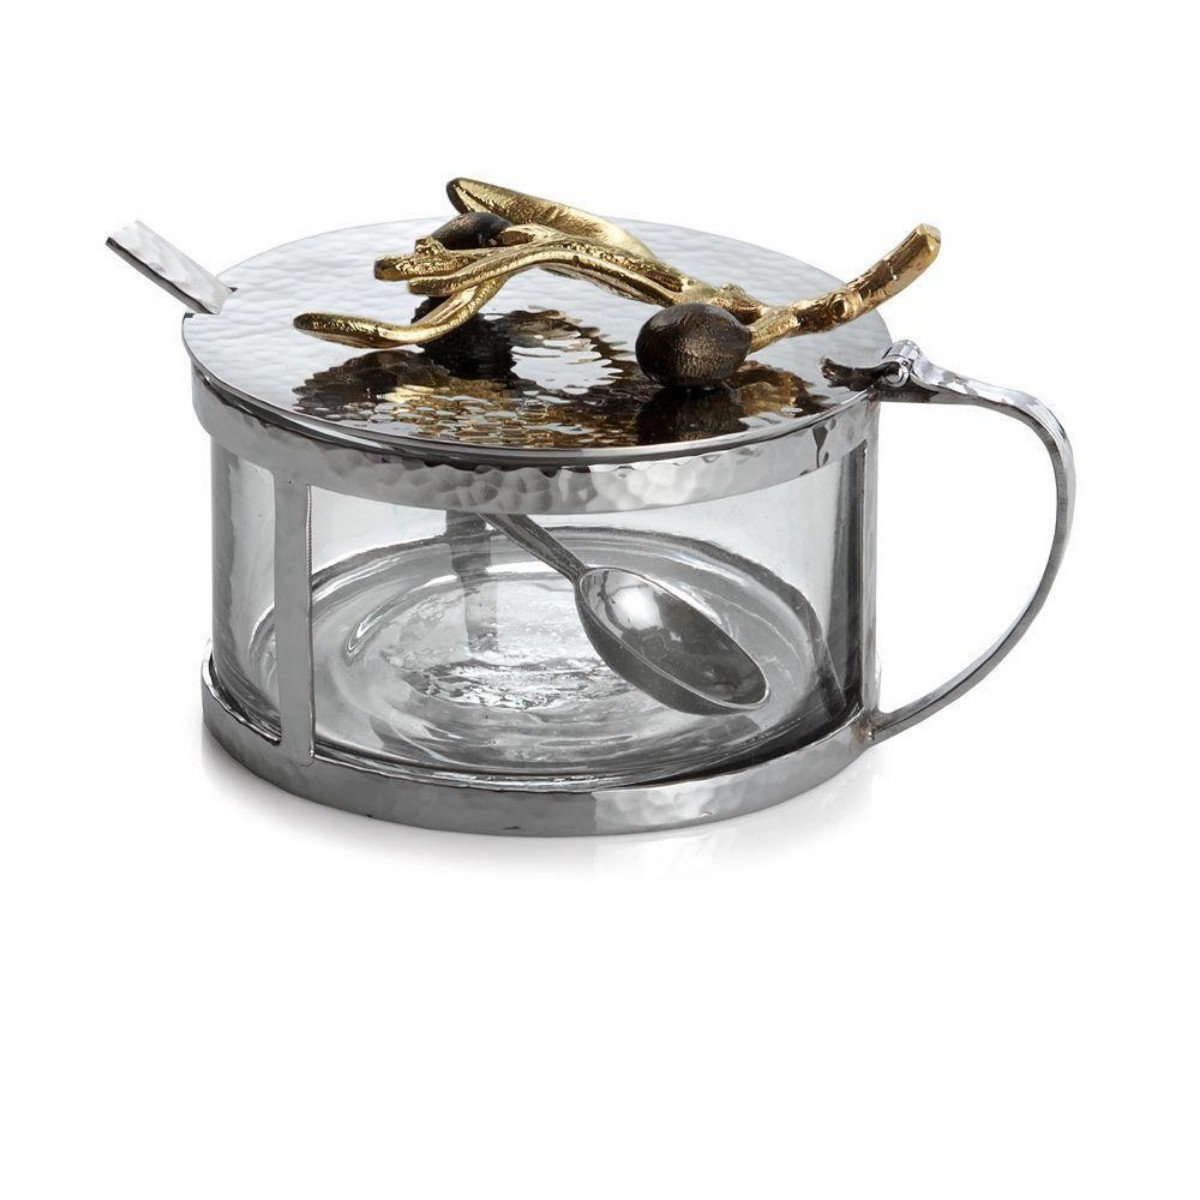 Michael Aram I Olive Branch Gold Condiment Container w/ Spoon